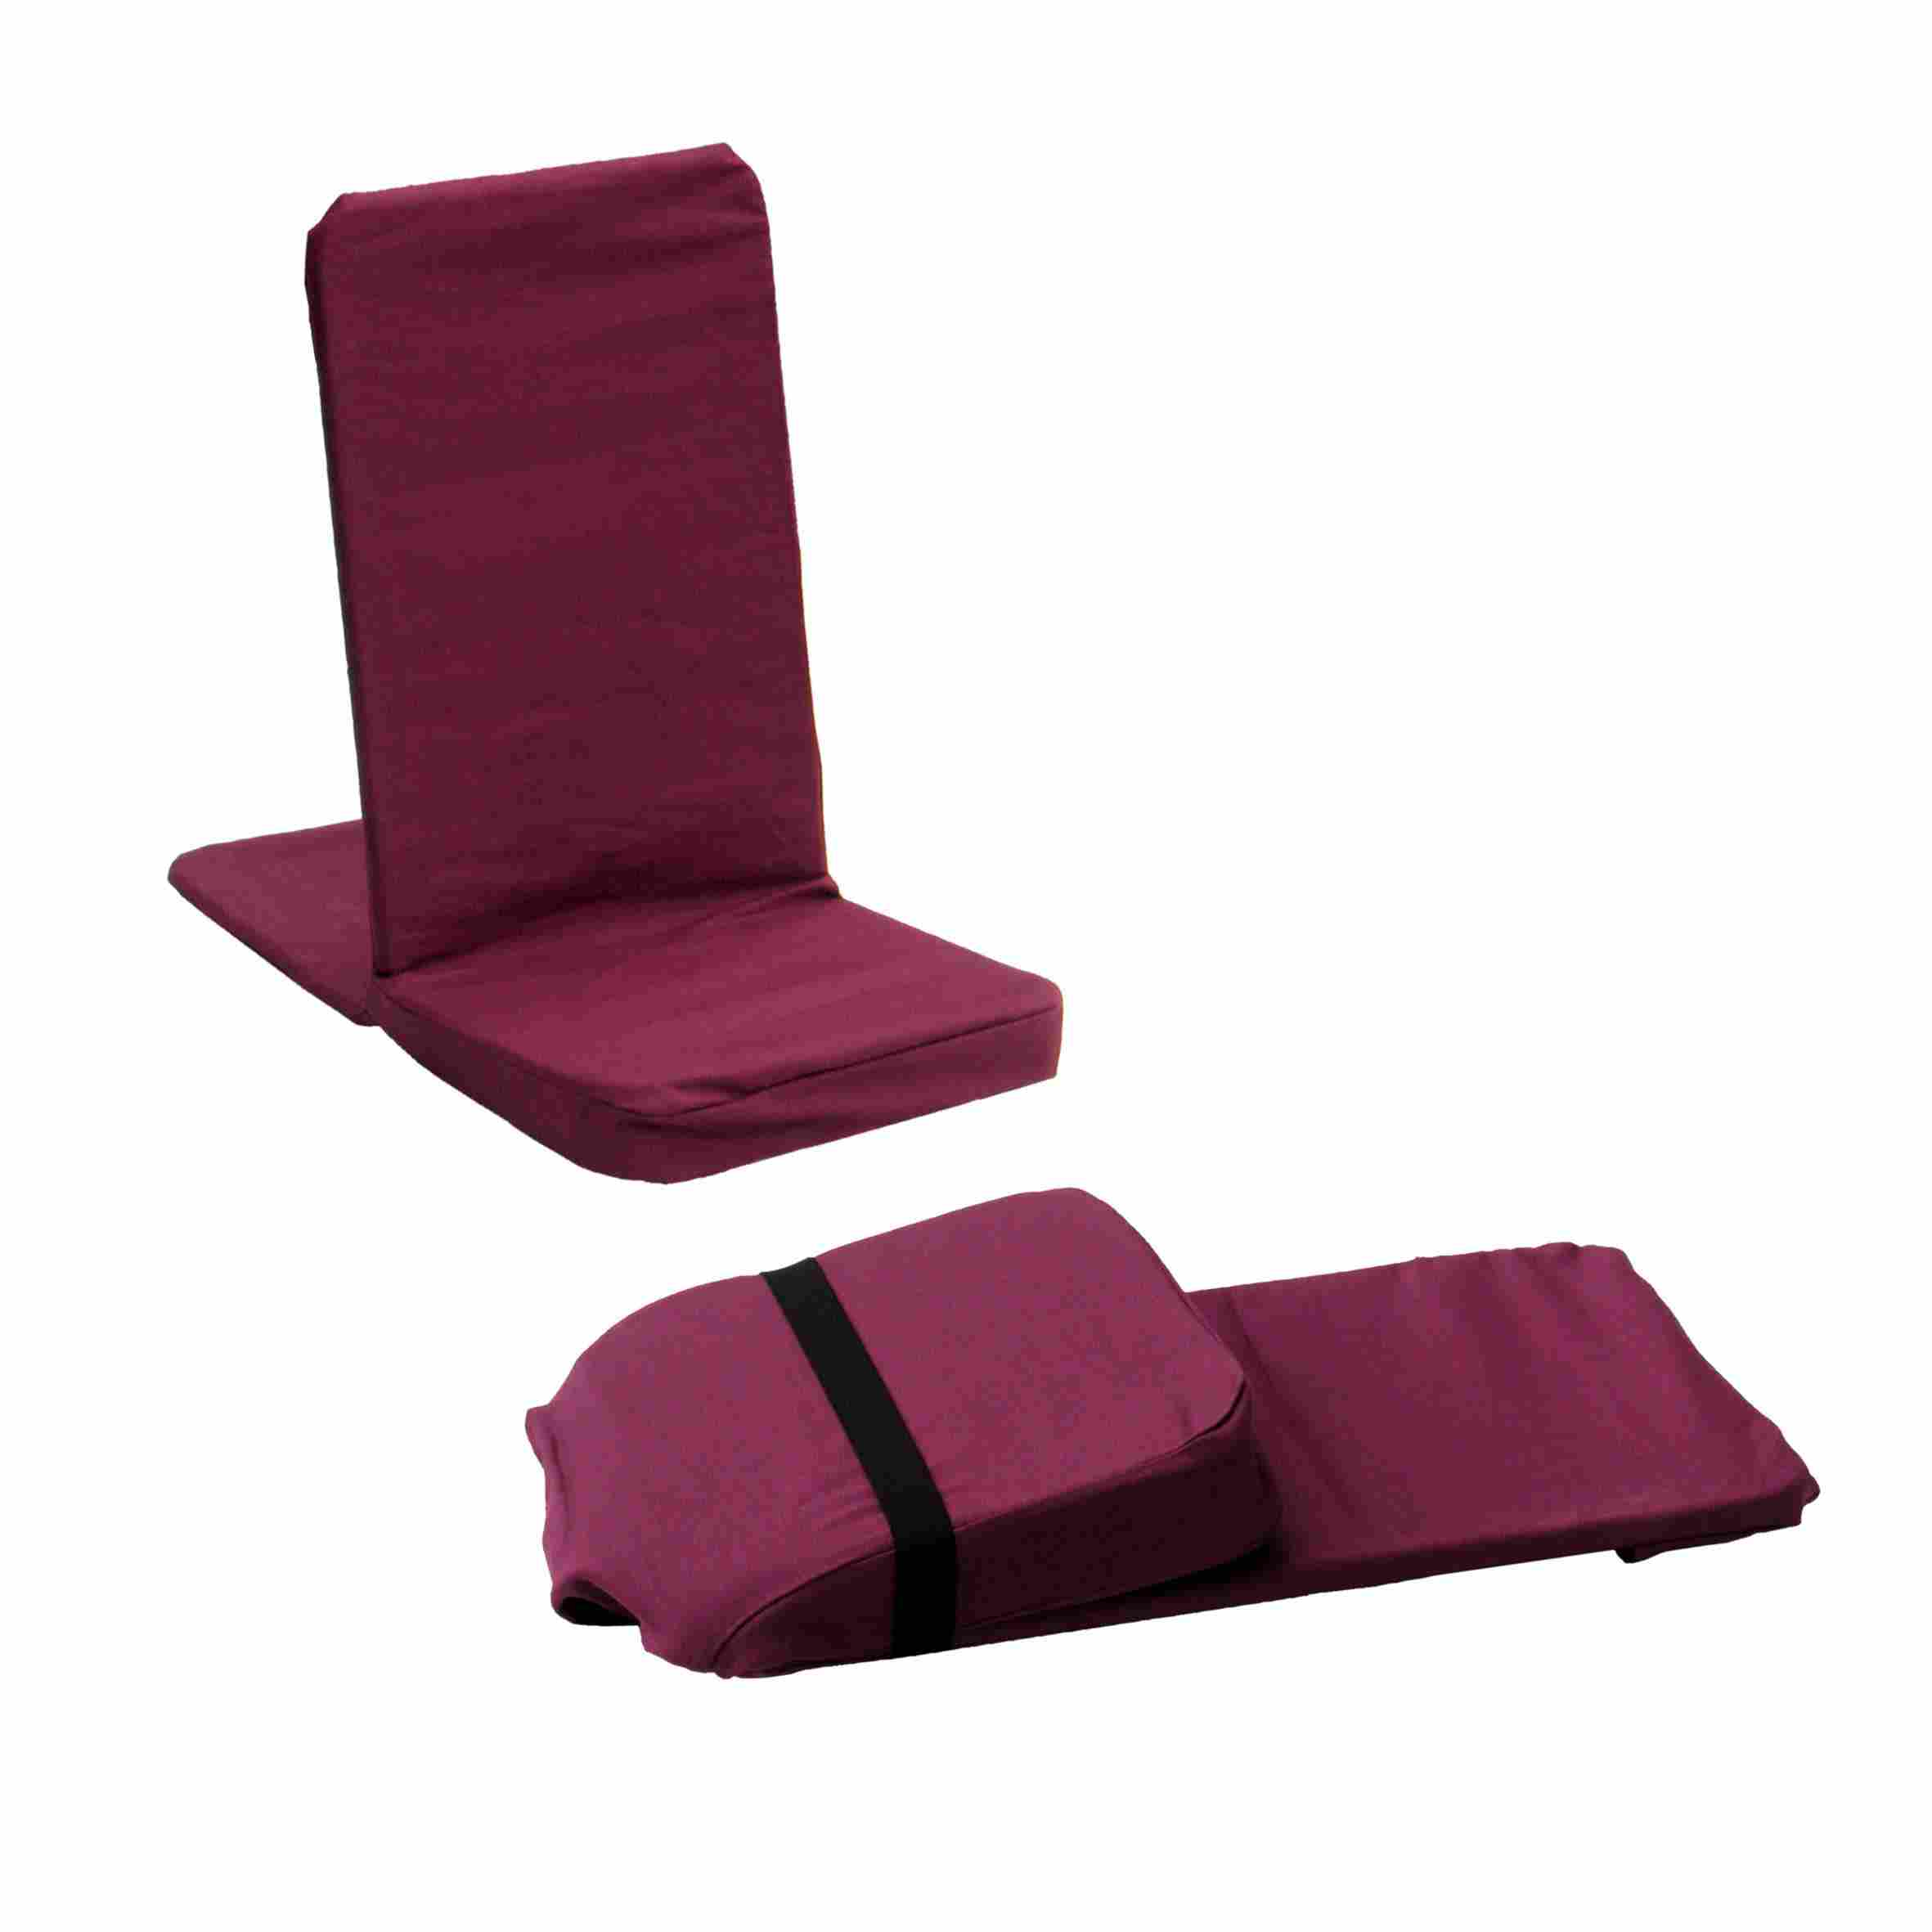 Back Jack Chairs Bodynova Massage Tables Yoga Mats Oakworks Taoline Pilates